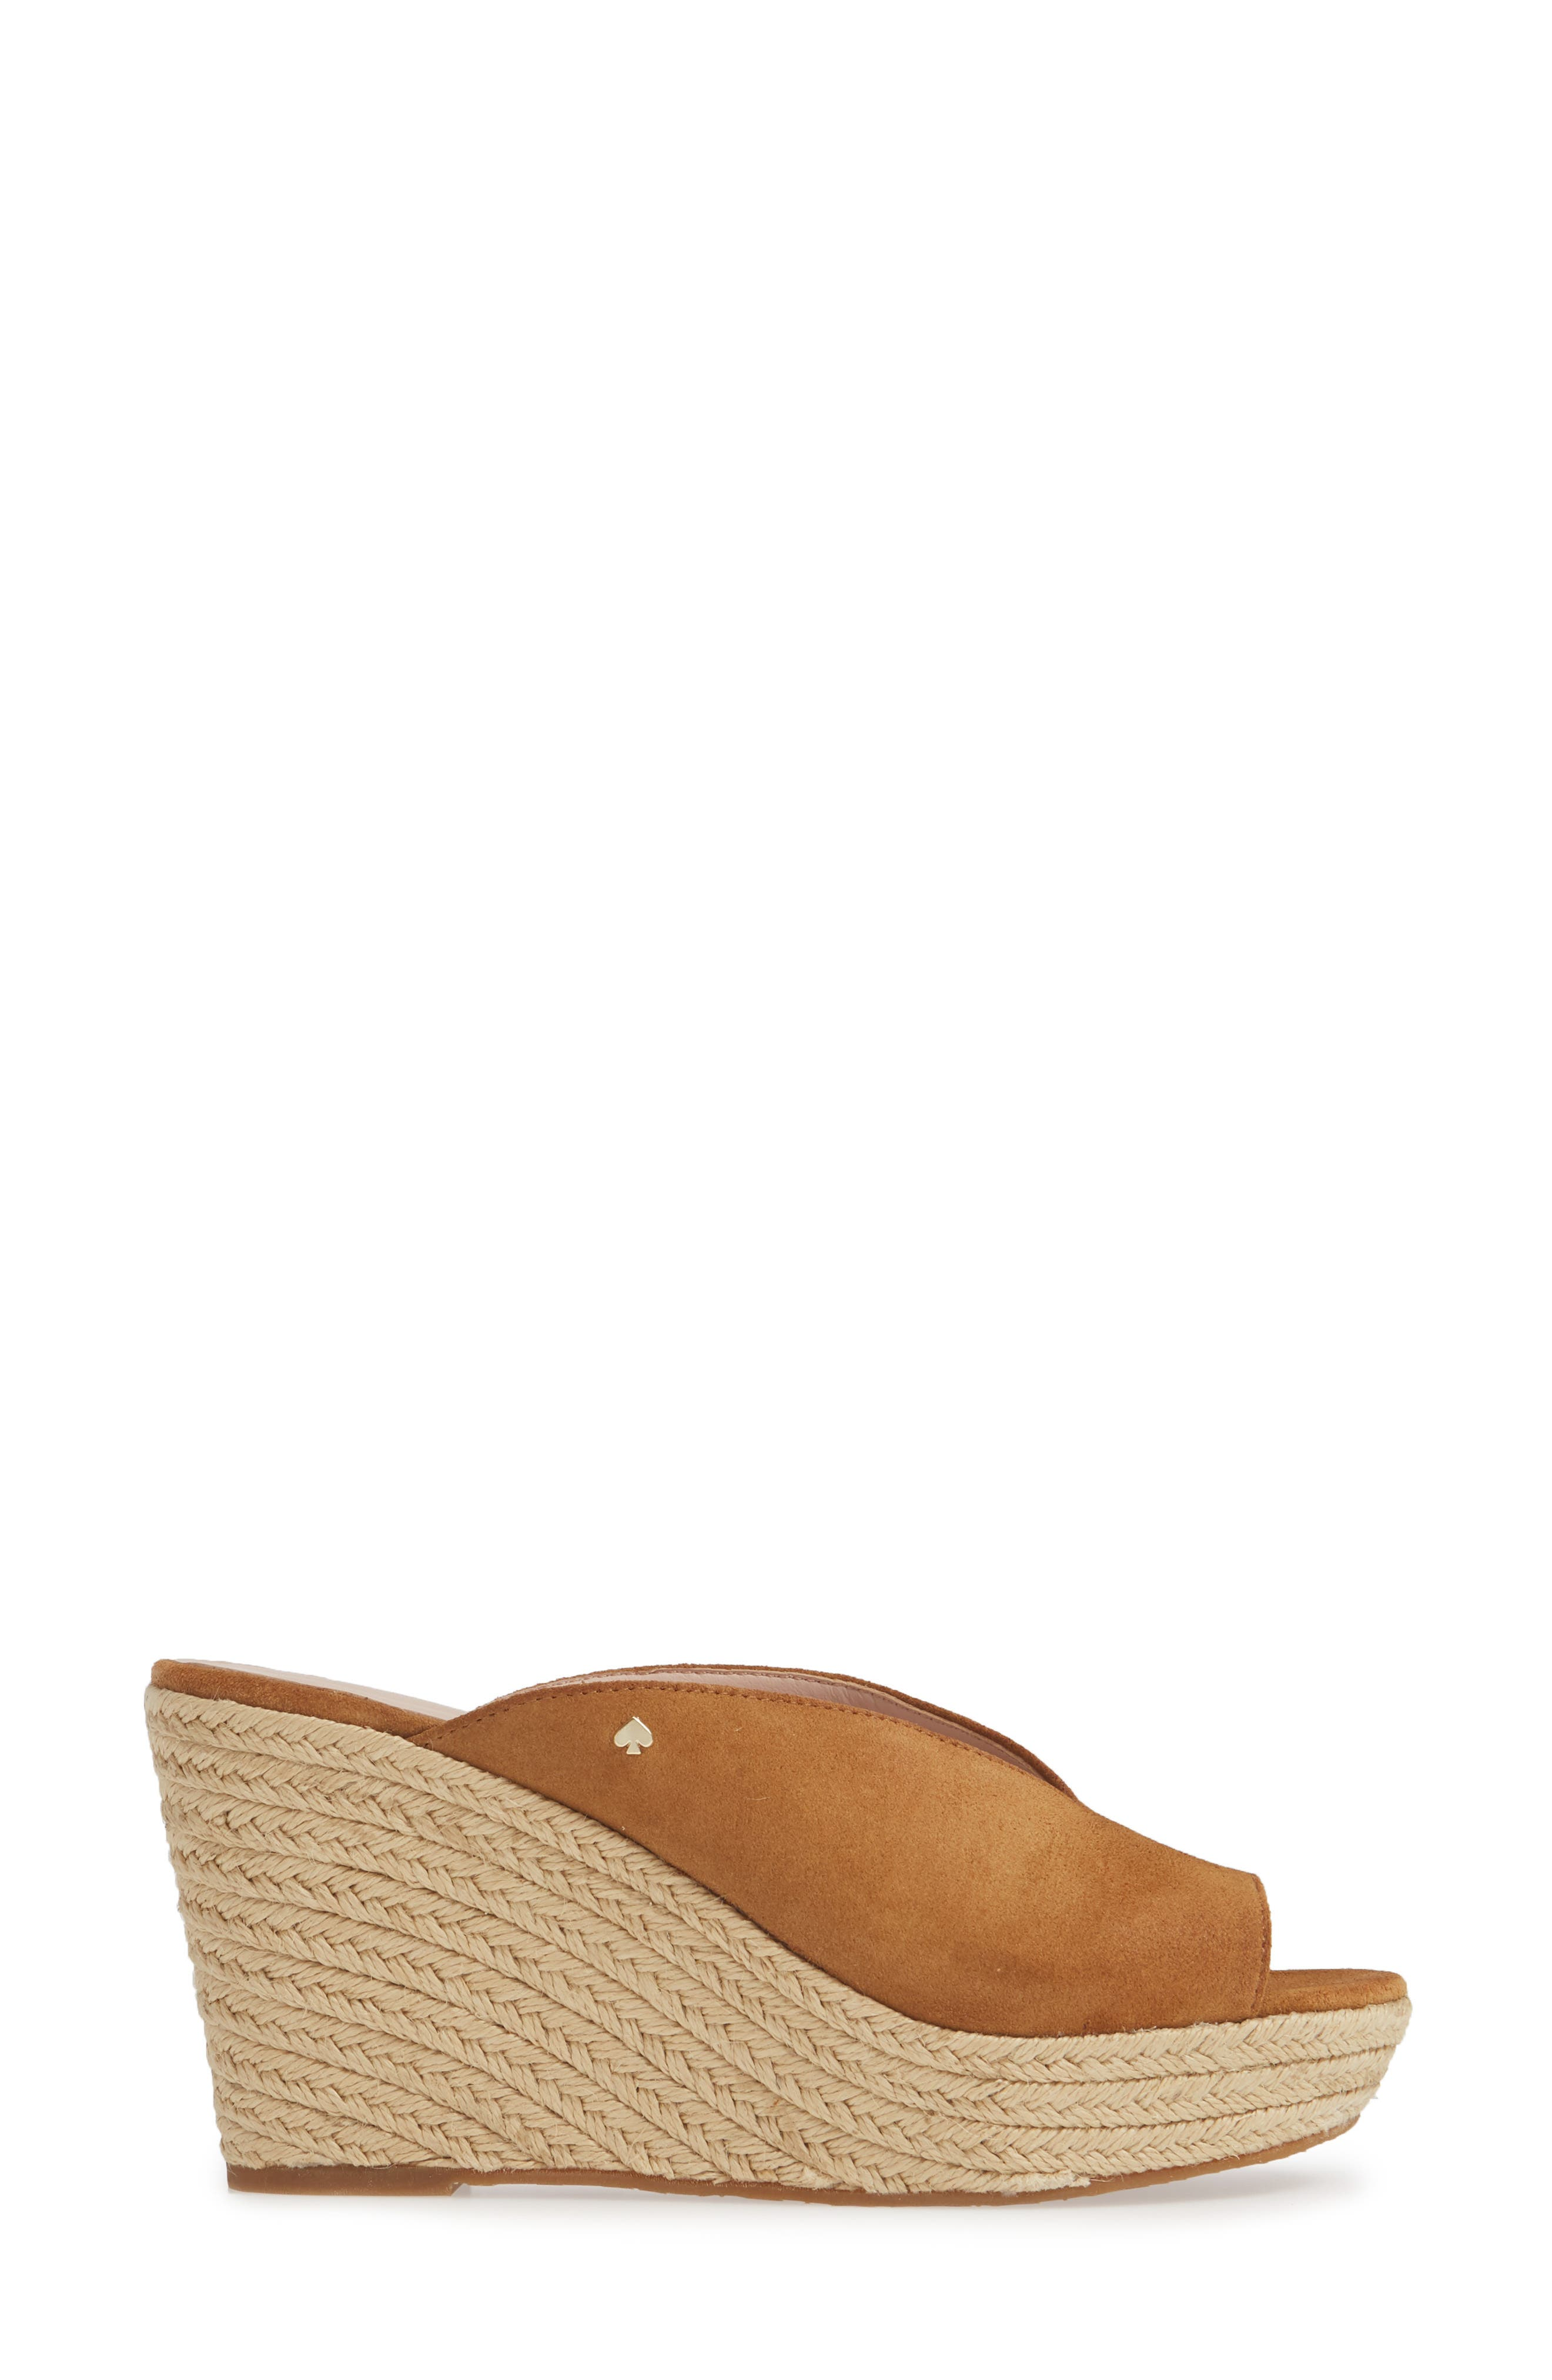 KATE SPADE NEW YORK, thea wedge espadrille mule, Alternate thumbnail 3, color, TOAST